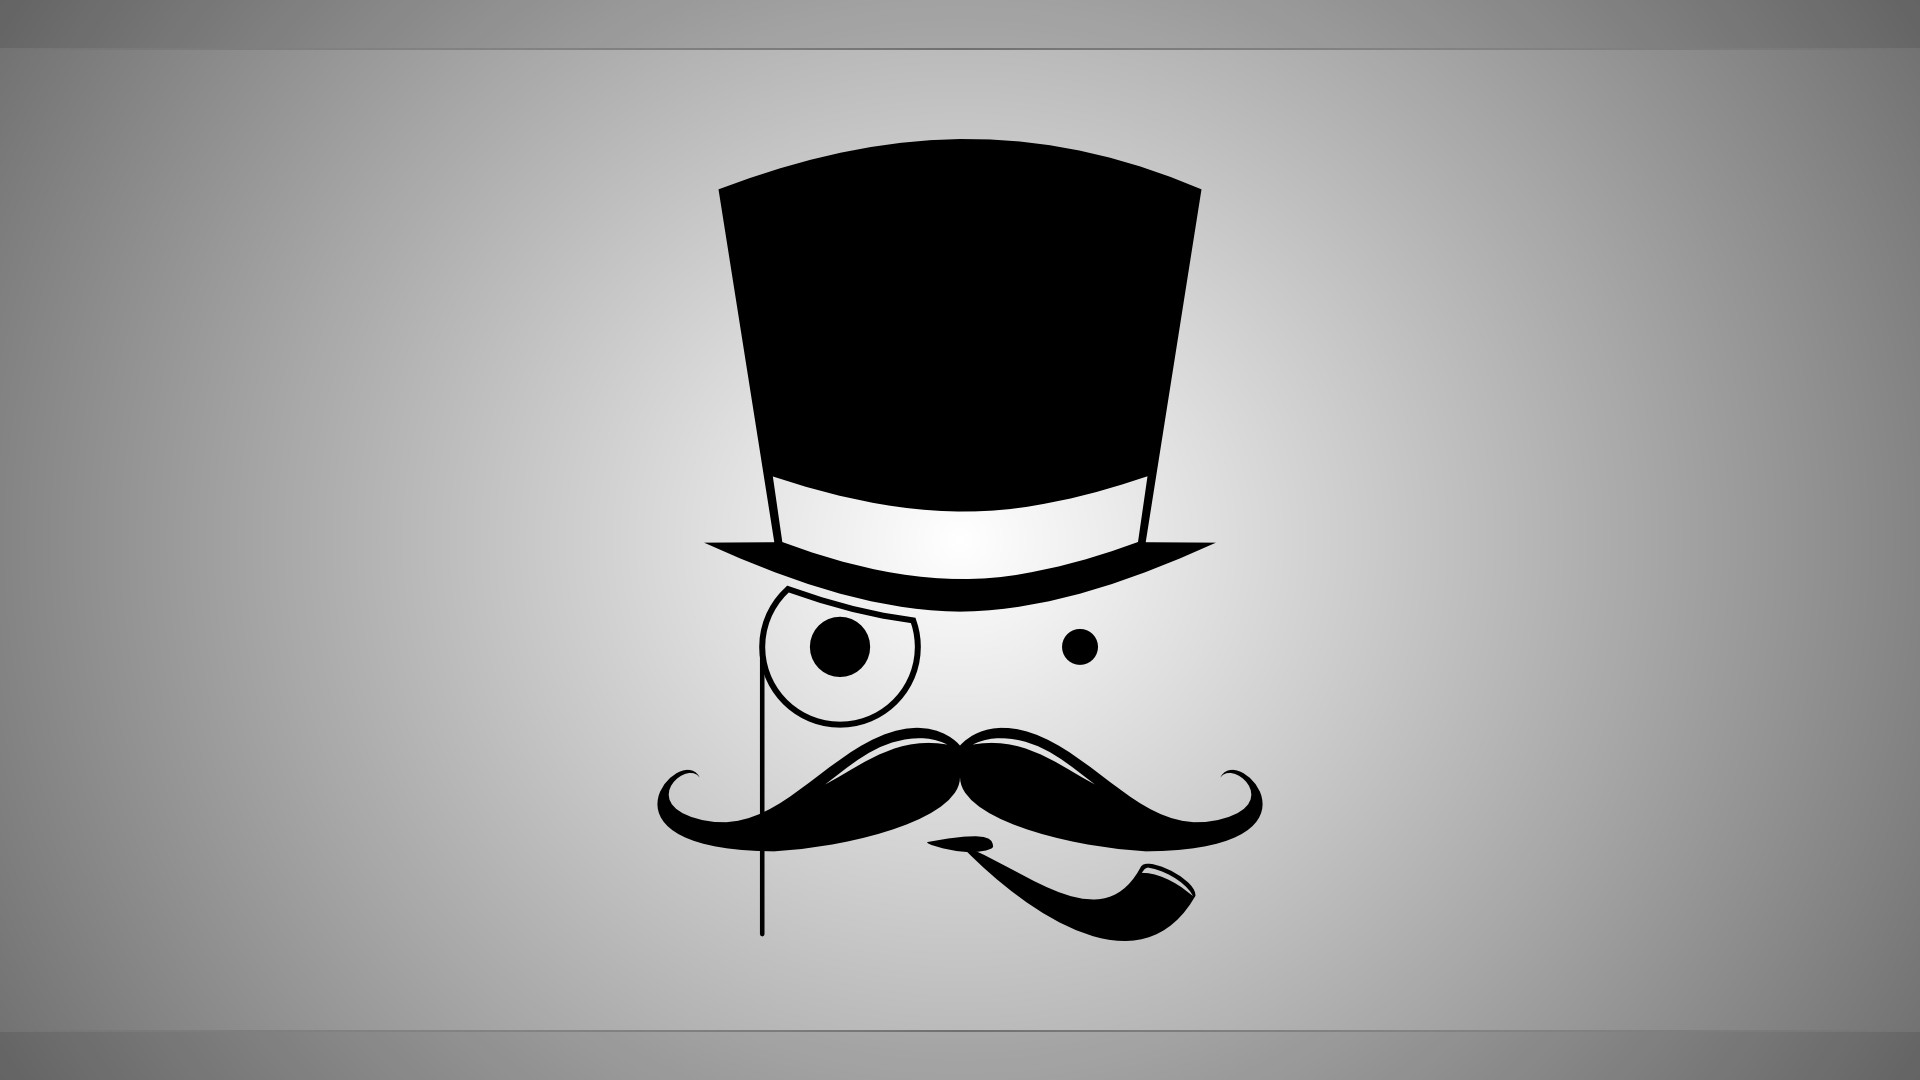 moustache wallpaper for iphone 6 wallpaper images